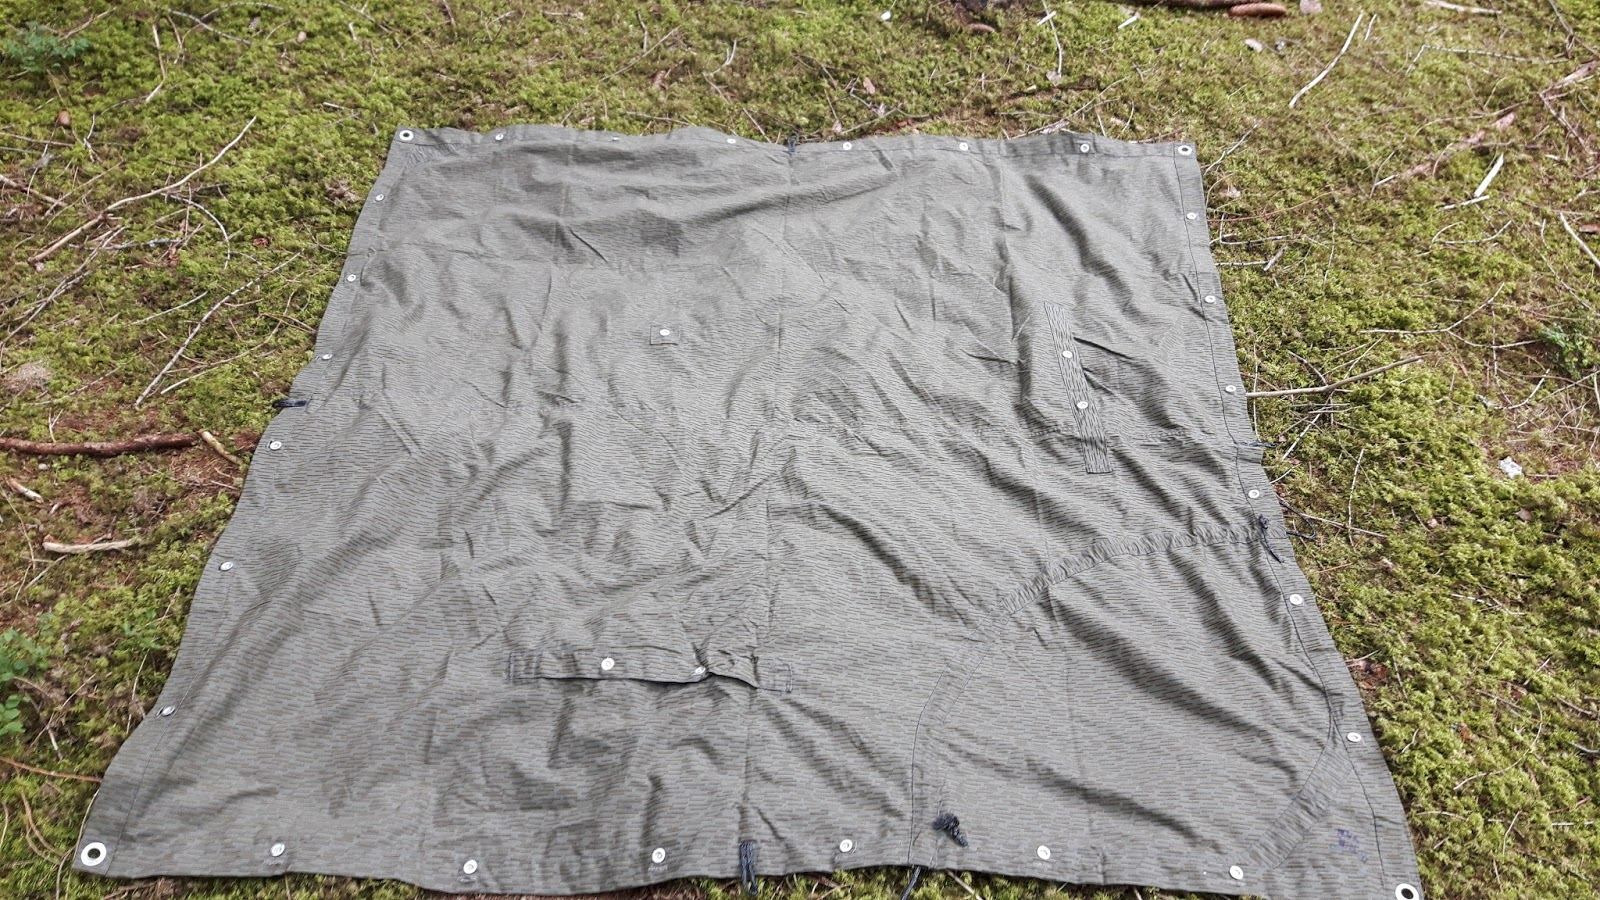 The NVA-Zeltbahn in all itu0027s glory. You can see the four grommets at the corners the metal buttons all round and the arm slits to wear it as a poncho. & Survival Skills and Thoughts on Outdoor Gear and Knives: NVA ...